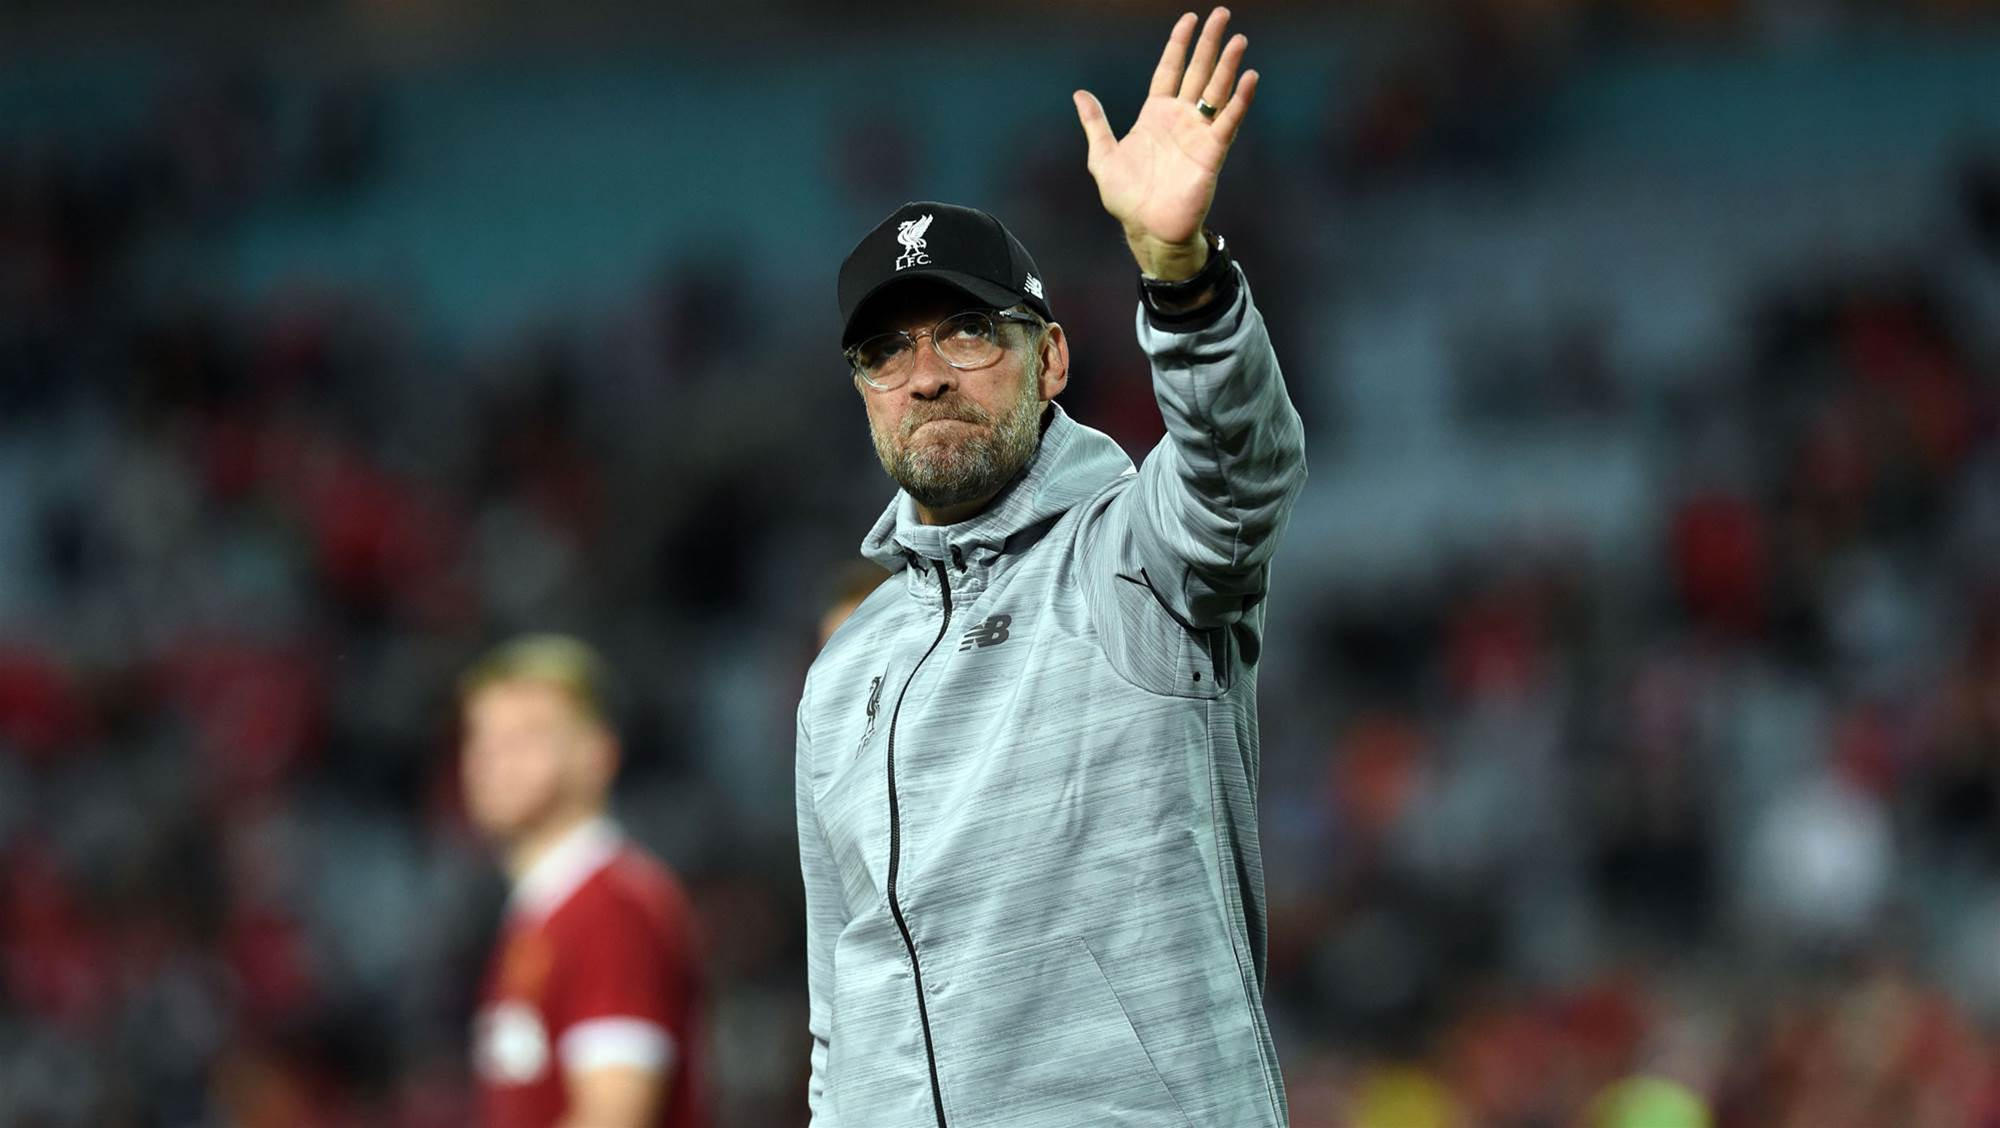 Klopp defends Sydney after 'crazy' talk